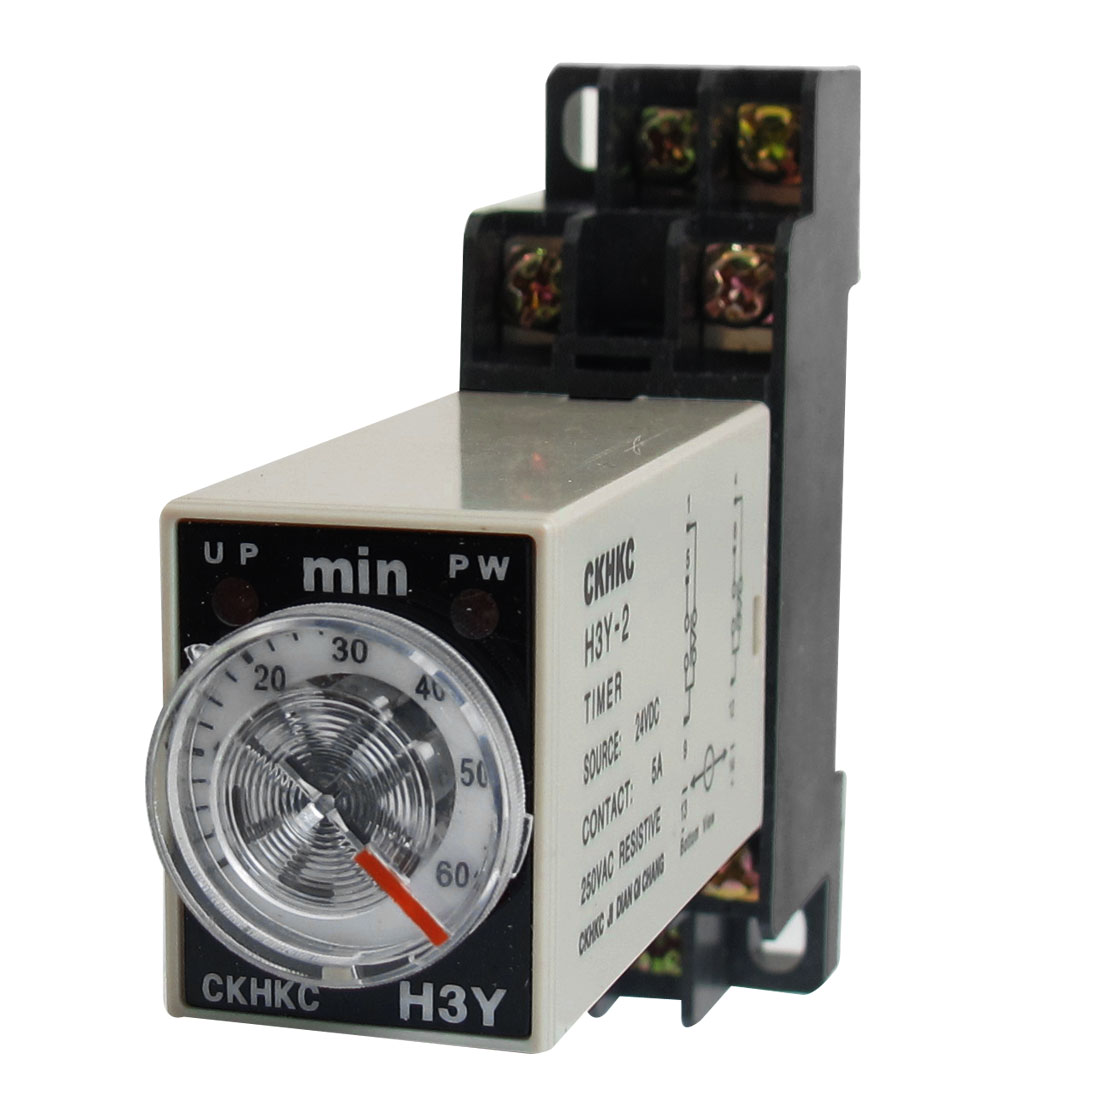 H3Y-2 24VDC DPDT 60 Minutes 60Min 8P Terminals Delay Timer Time Relay w Base